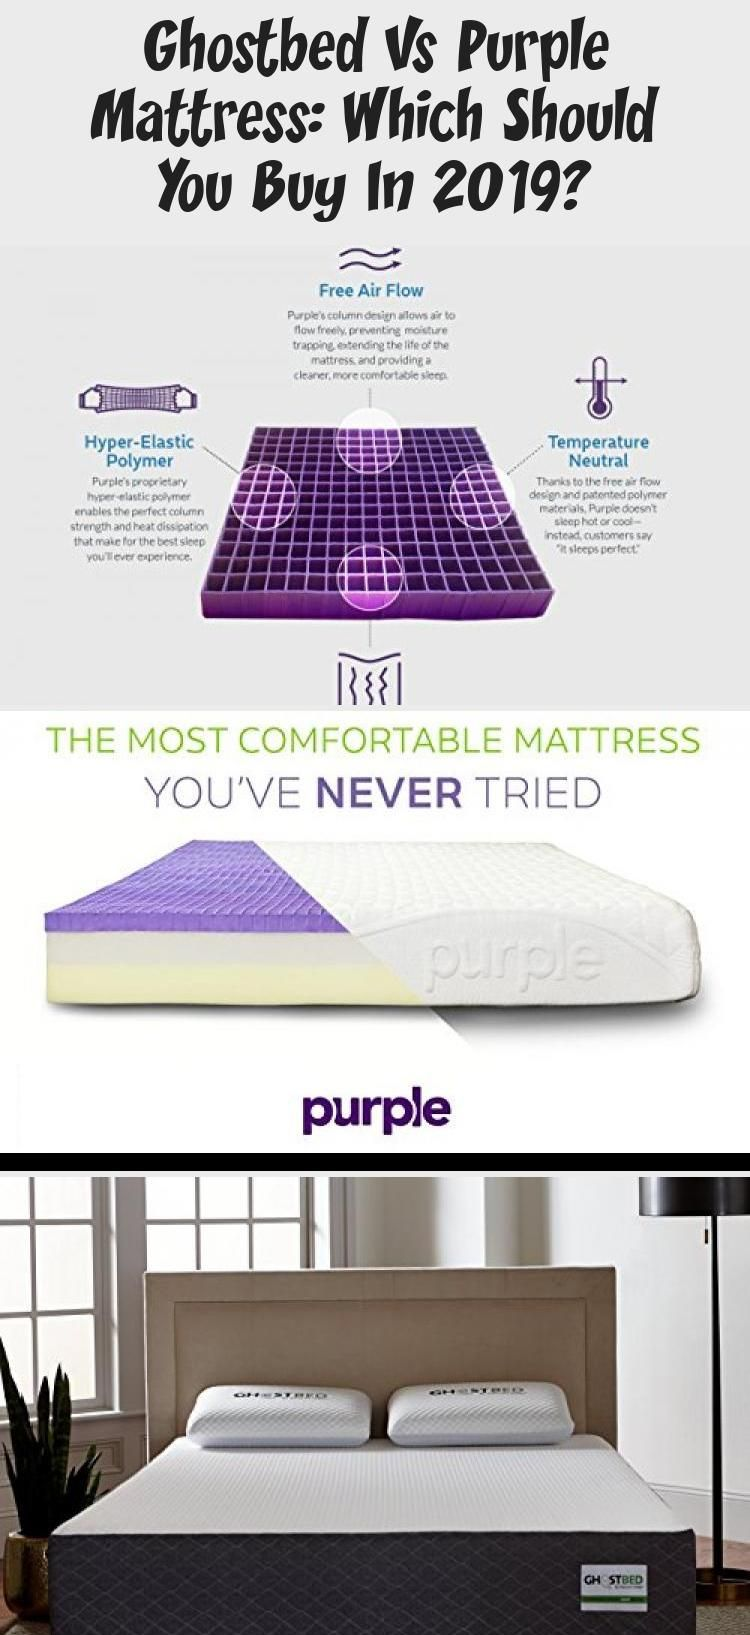 Ghostbed Vs Purple Mattress Which Should You Buy In 2019 In 2020